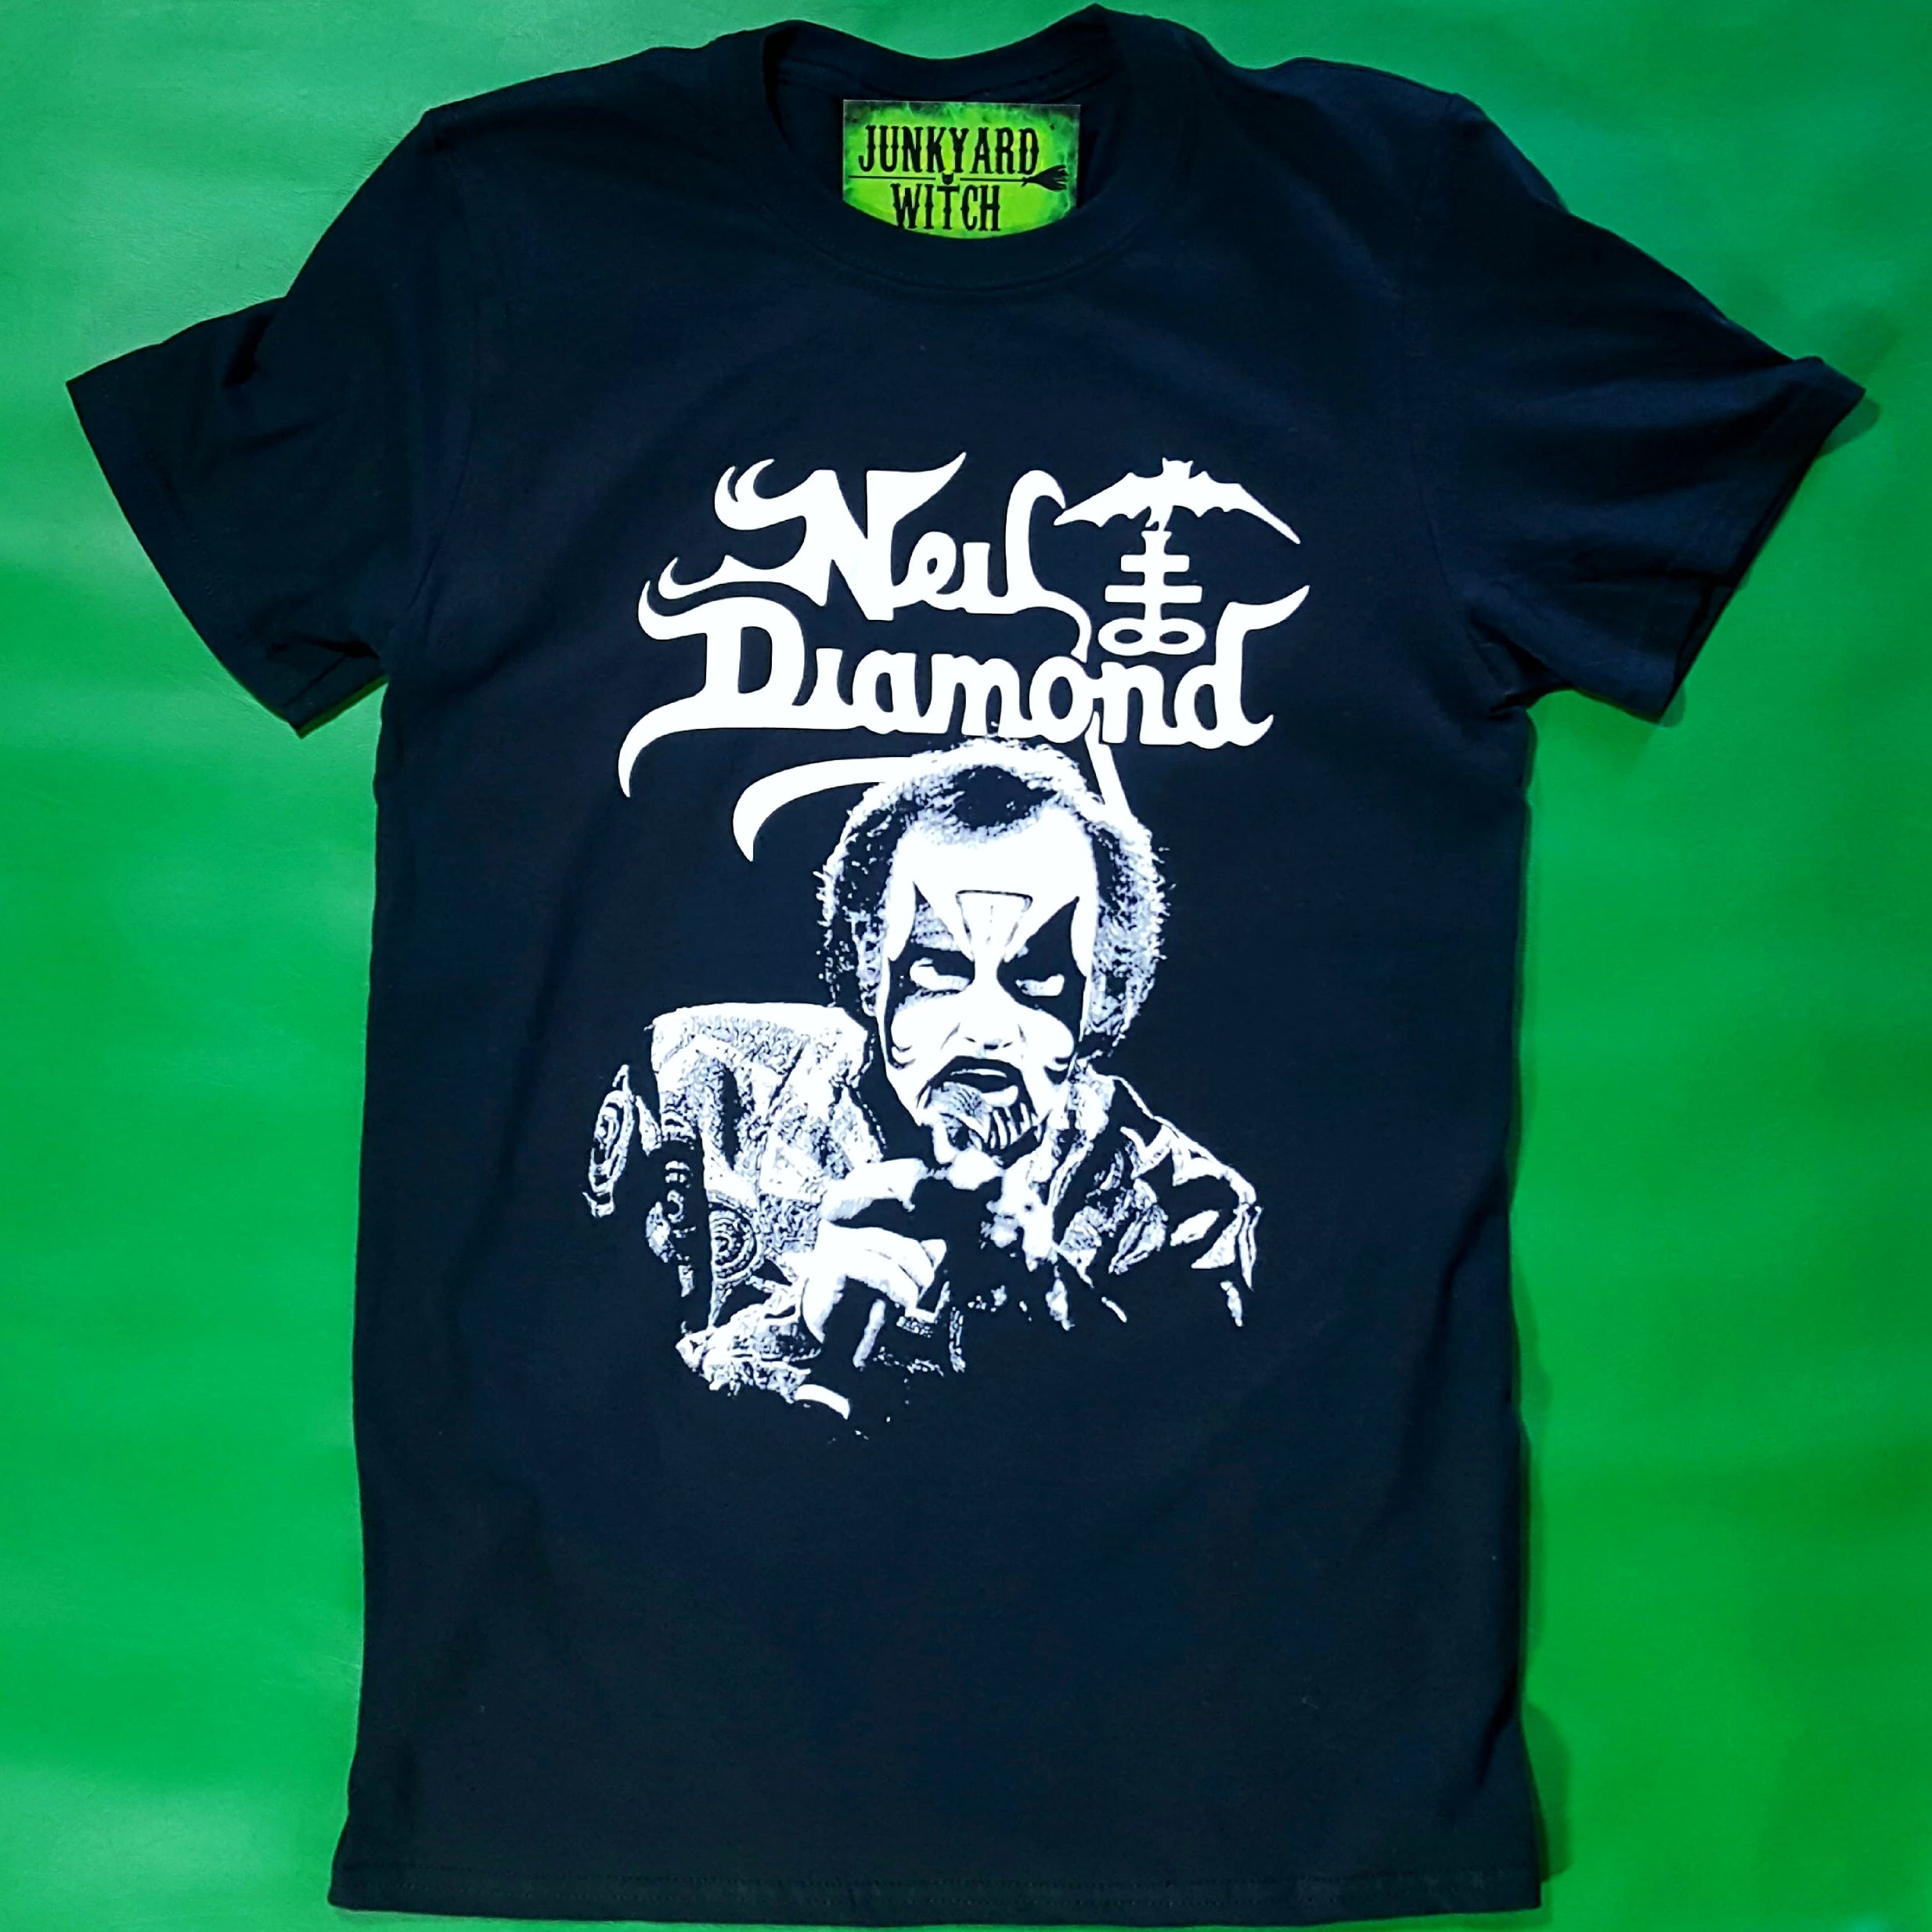 King Neil Diamond T-shirt